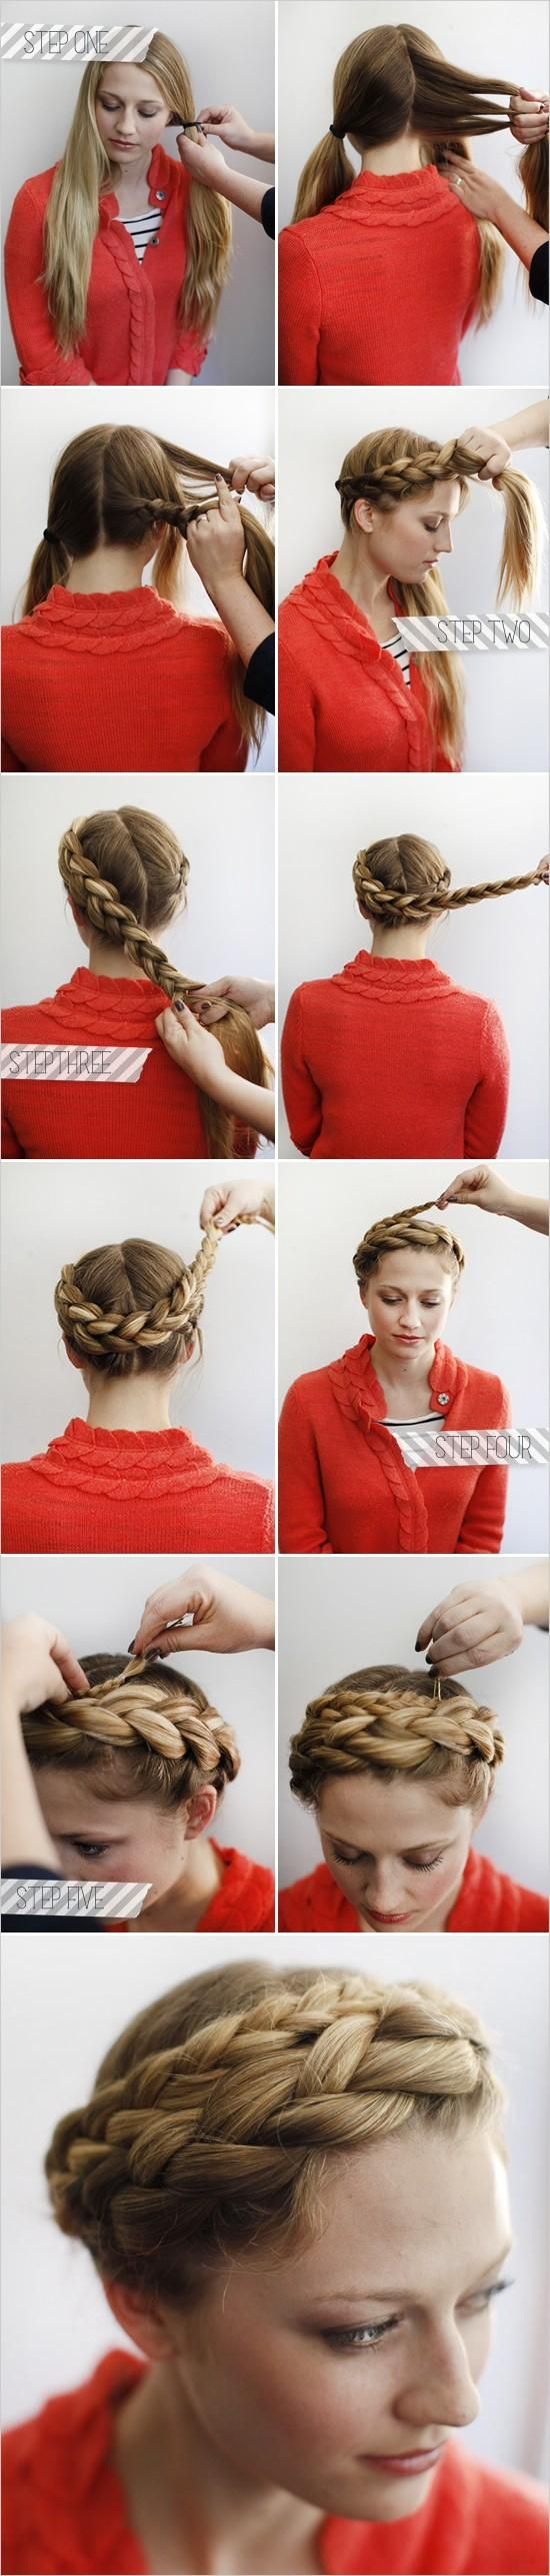 Halo Braid Tutorial - I've been doing this A TON lately.